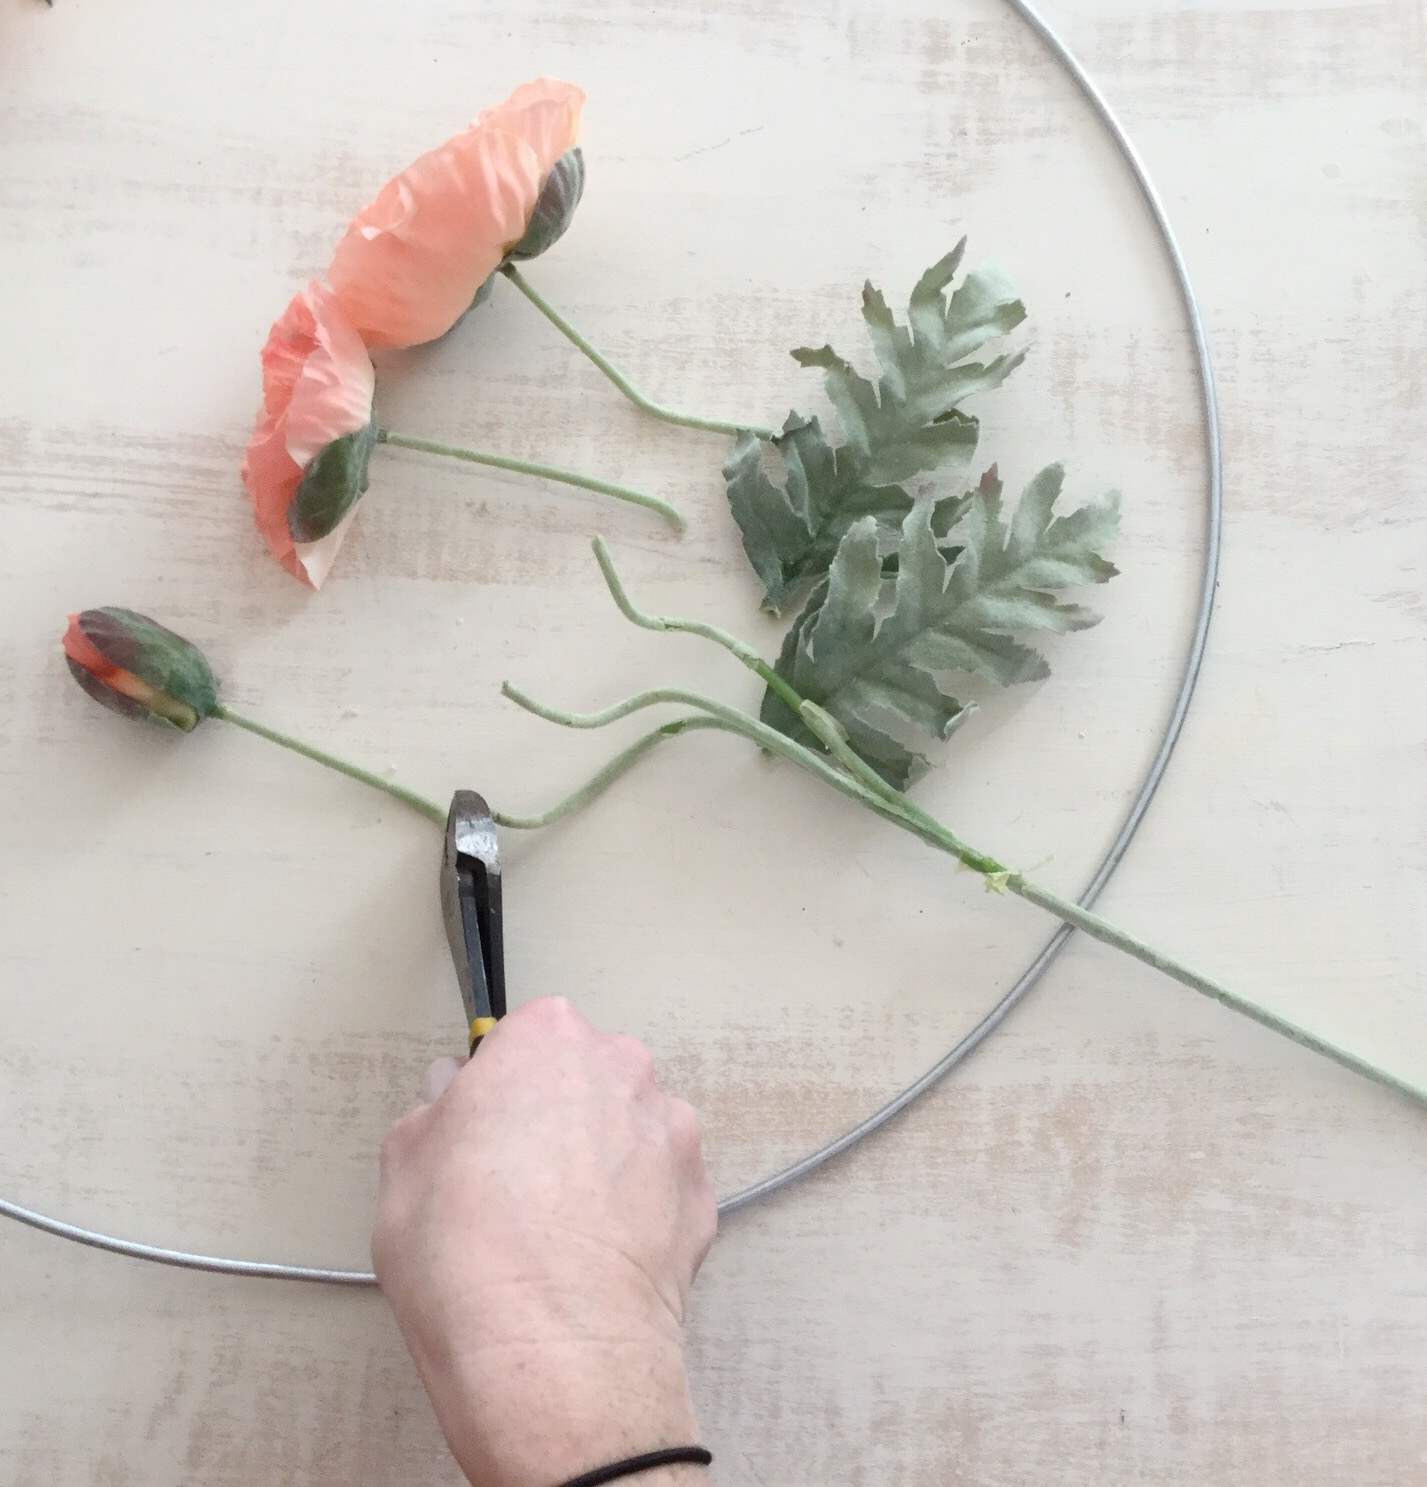 Step 1: Clip stems - Using a pair of wire cutters, clip the stems off of your flowers. Make sure to keep 2-3 inches of the stems in tact.